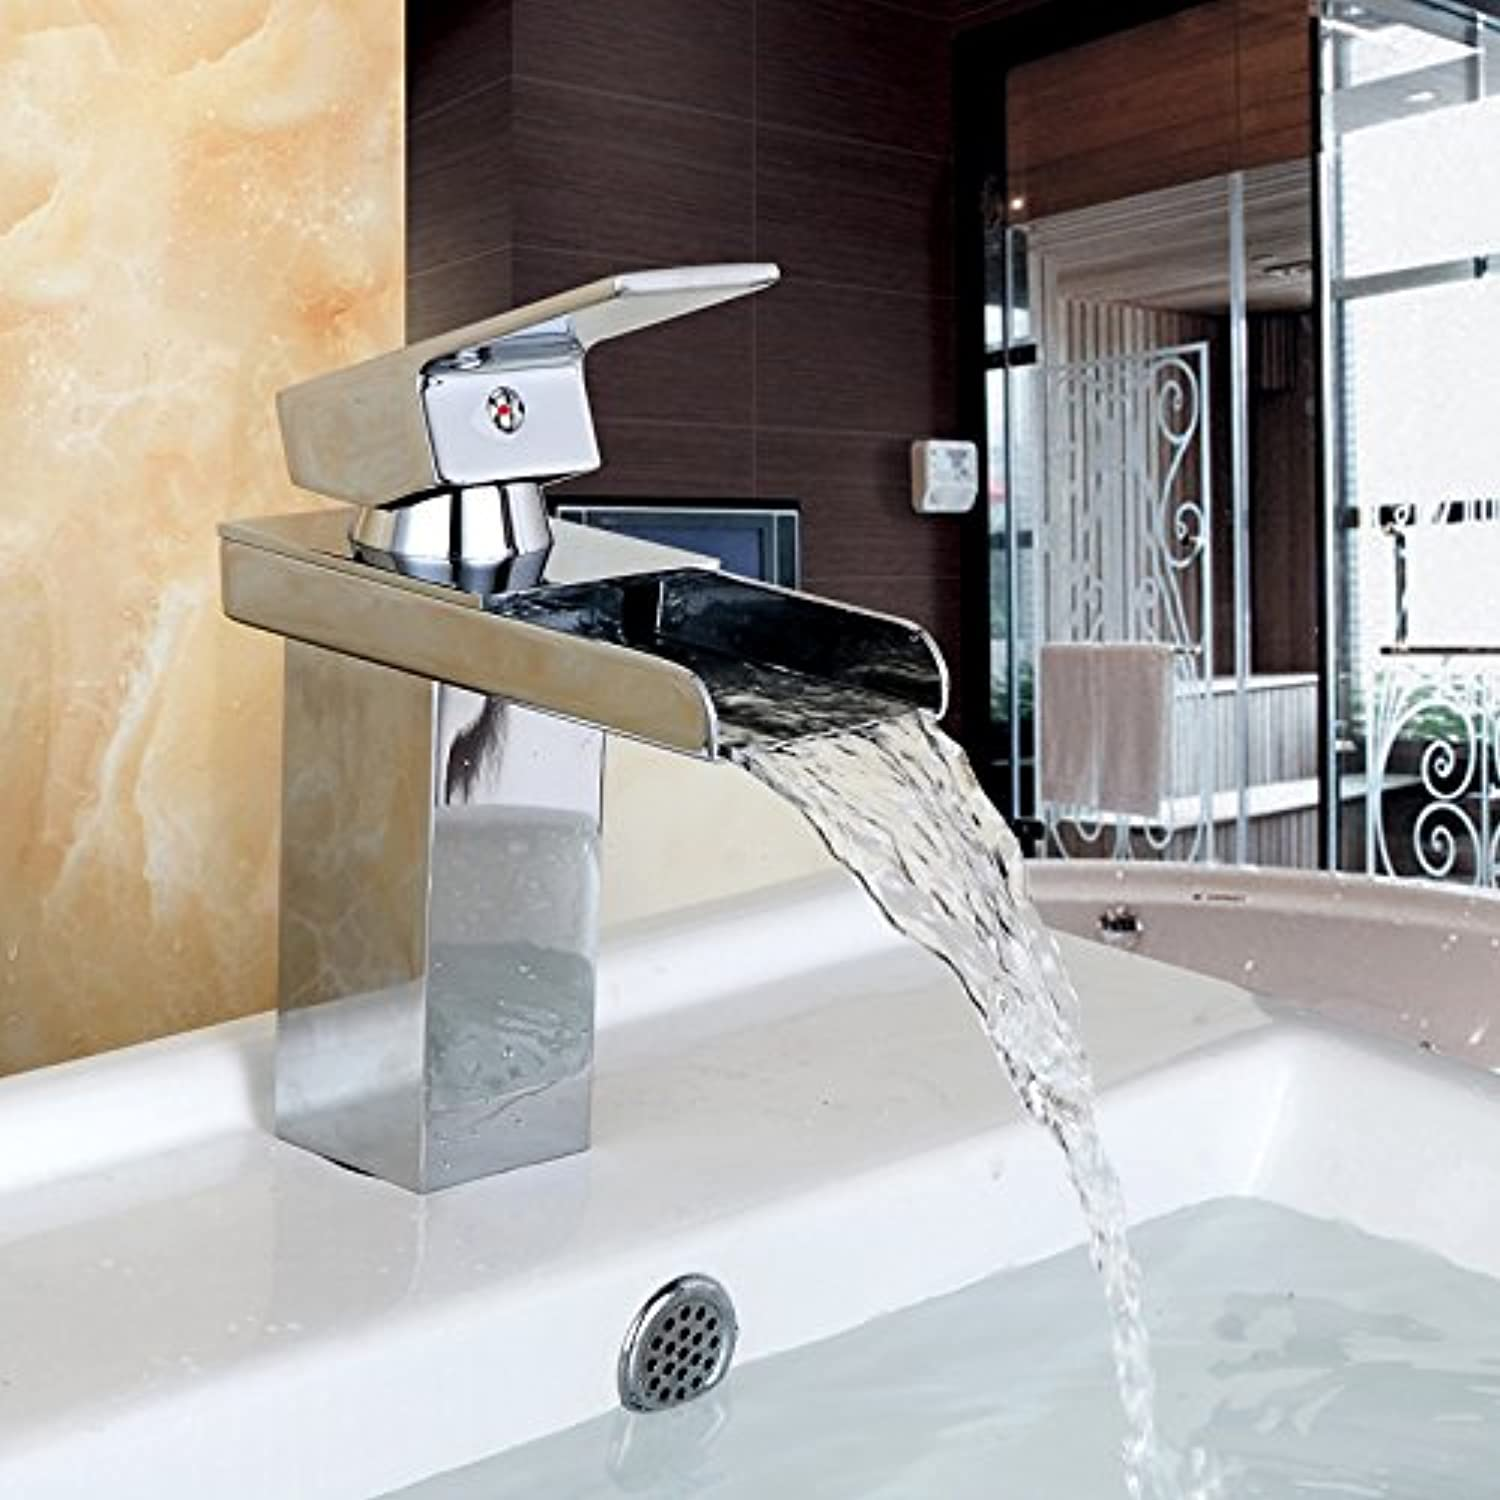 GQLB Kitchen sink mixer tap waterfall kitchen sink basin mixer tap waterfall kitchen sink basin mixer tap hot and cold sink mixer cloakroom basin sink mixer tap basin mixer tap bathroom faucet